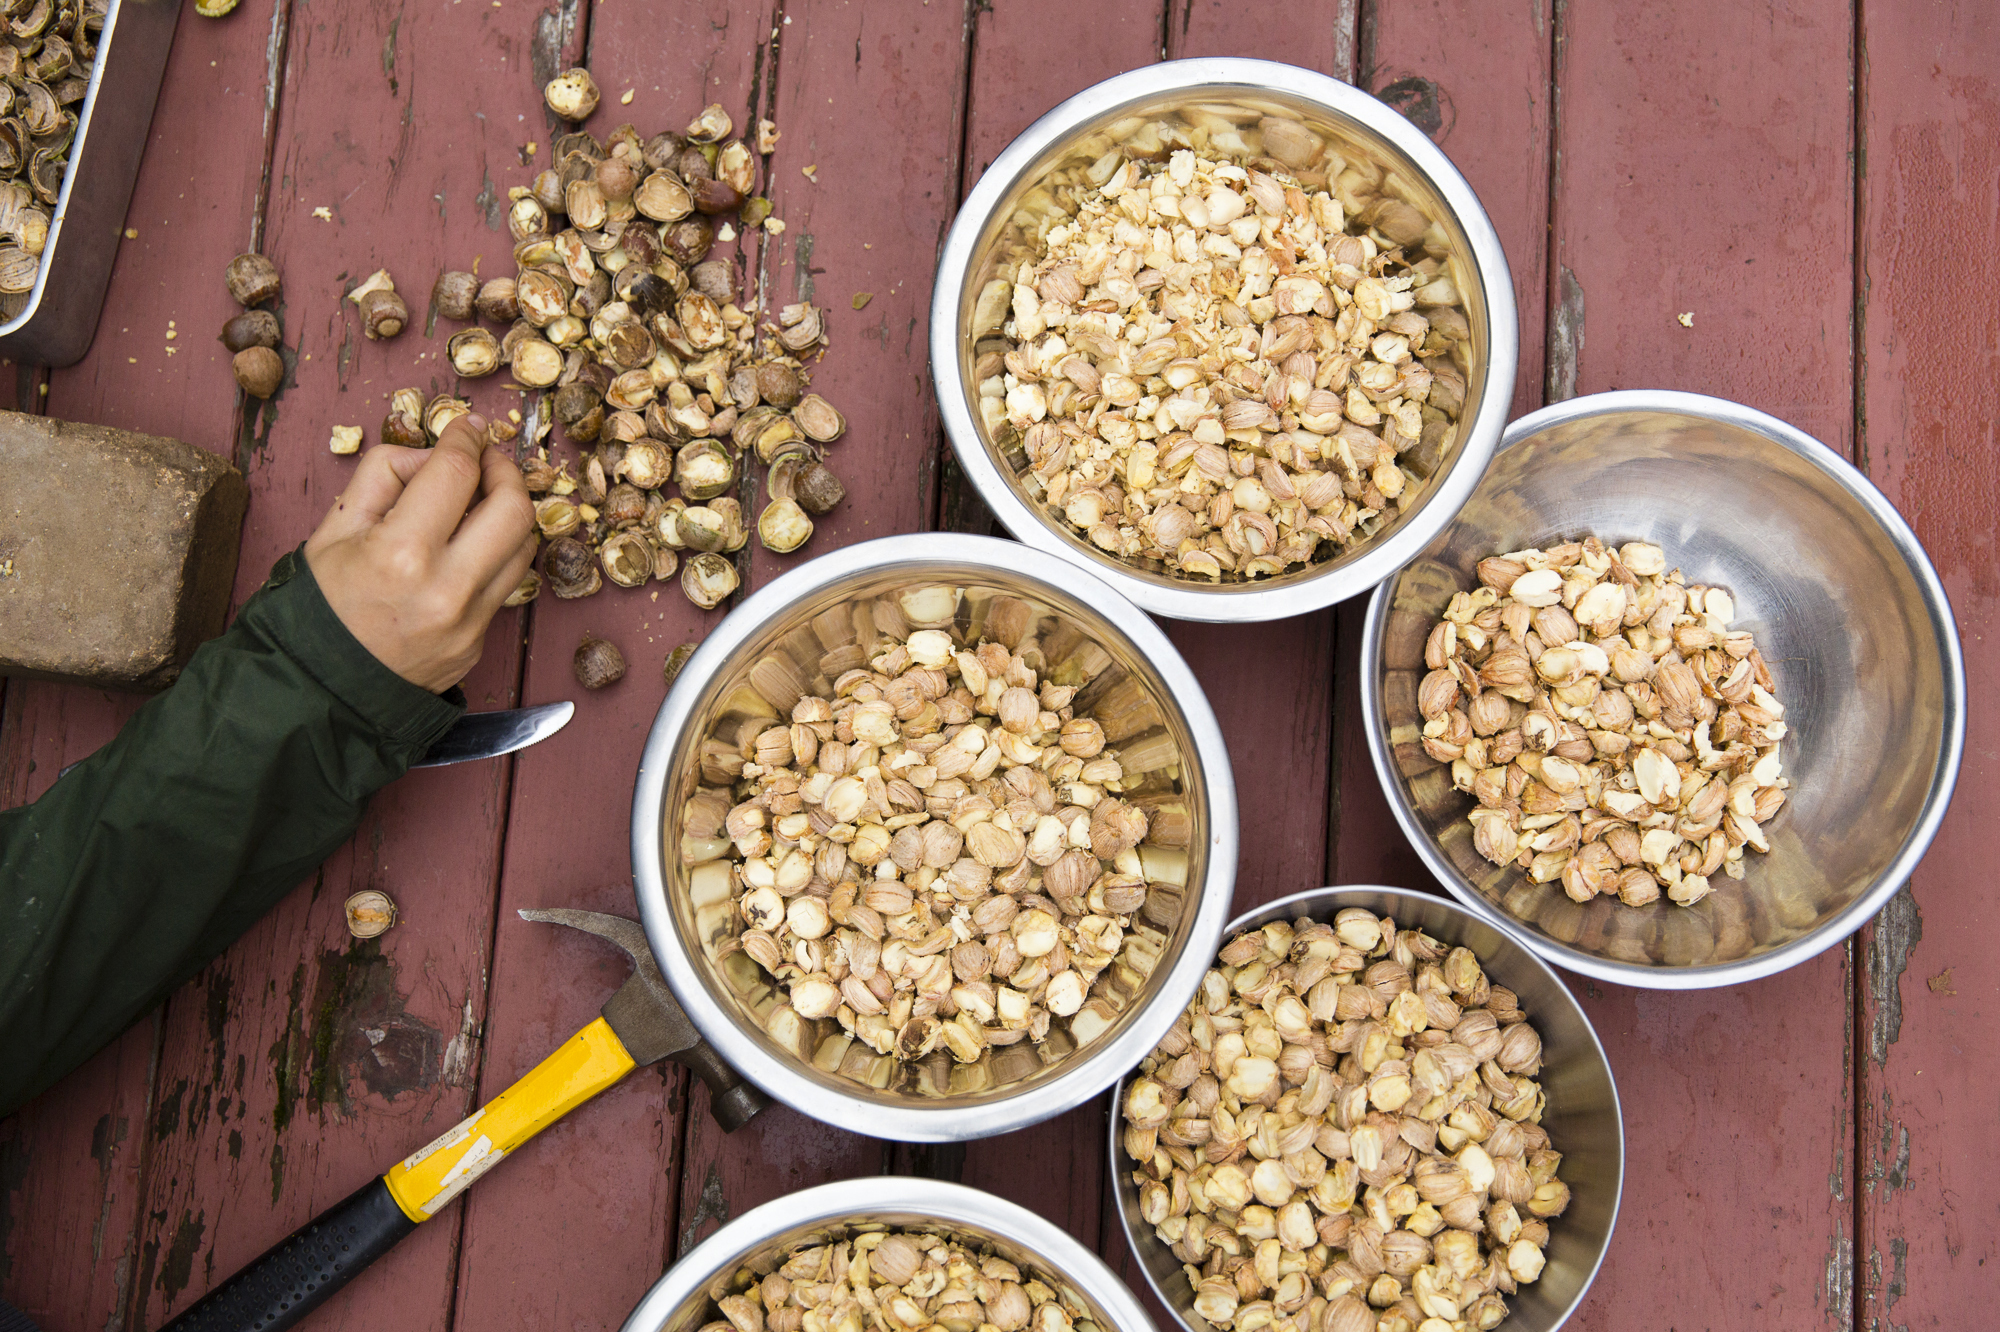 Nutritious Acorns Don't Have To Just Be Snacks For Squirrels